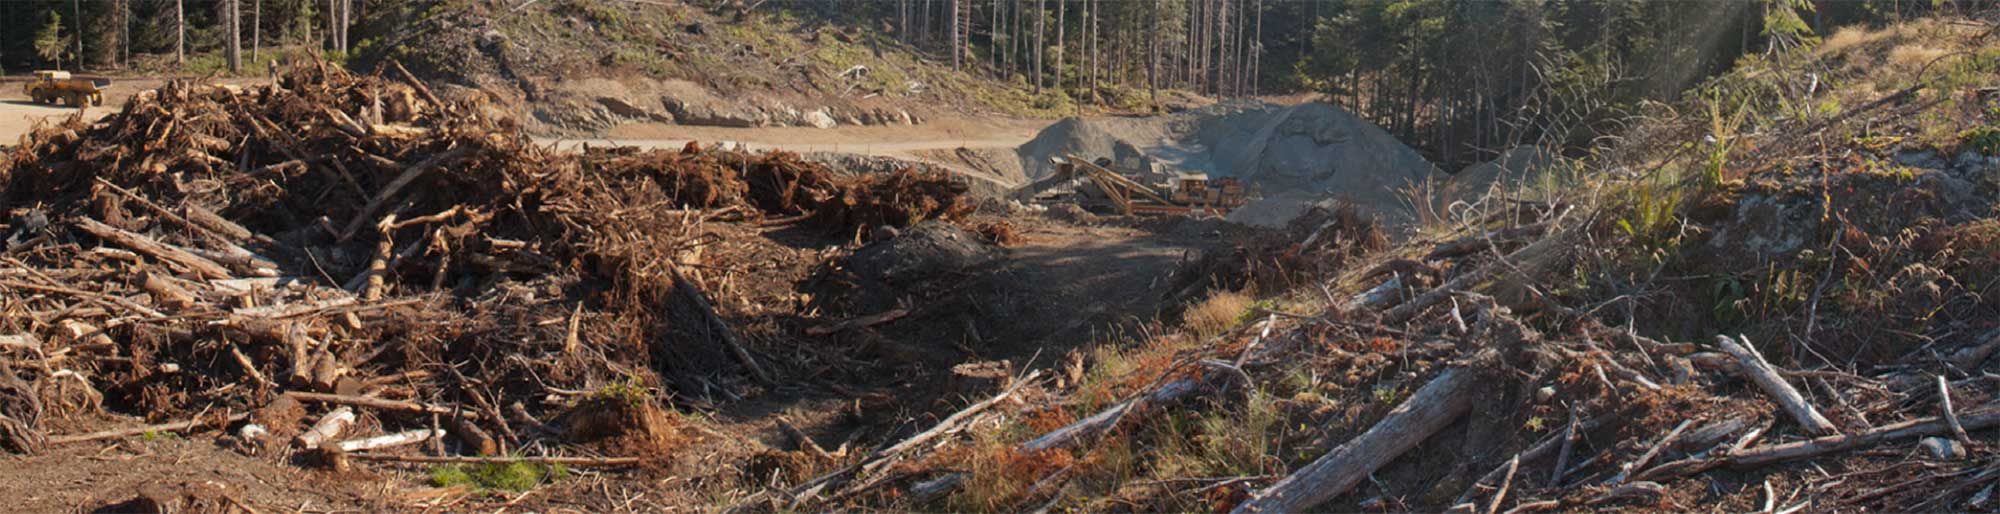 A wide stretch of piles of broken branches, disturbed dirt and rocks - the result of typical BC logging